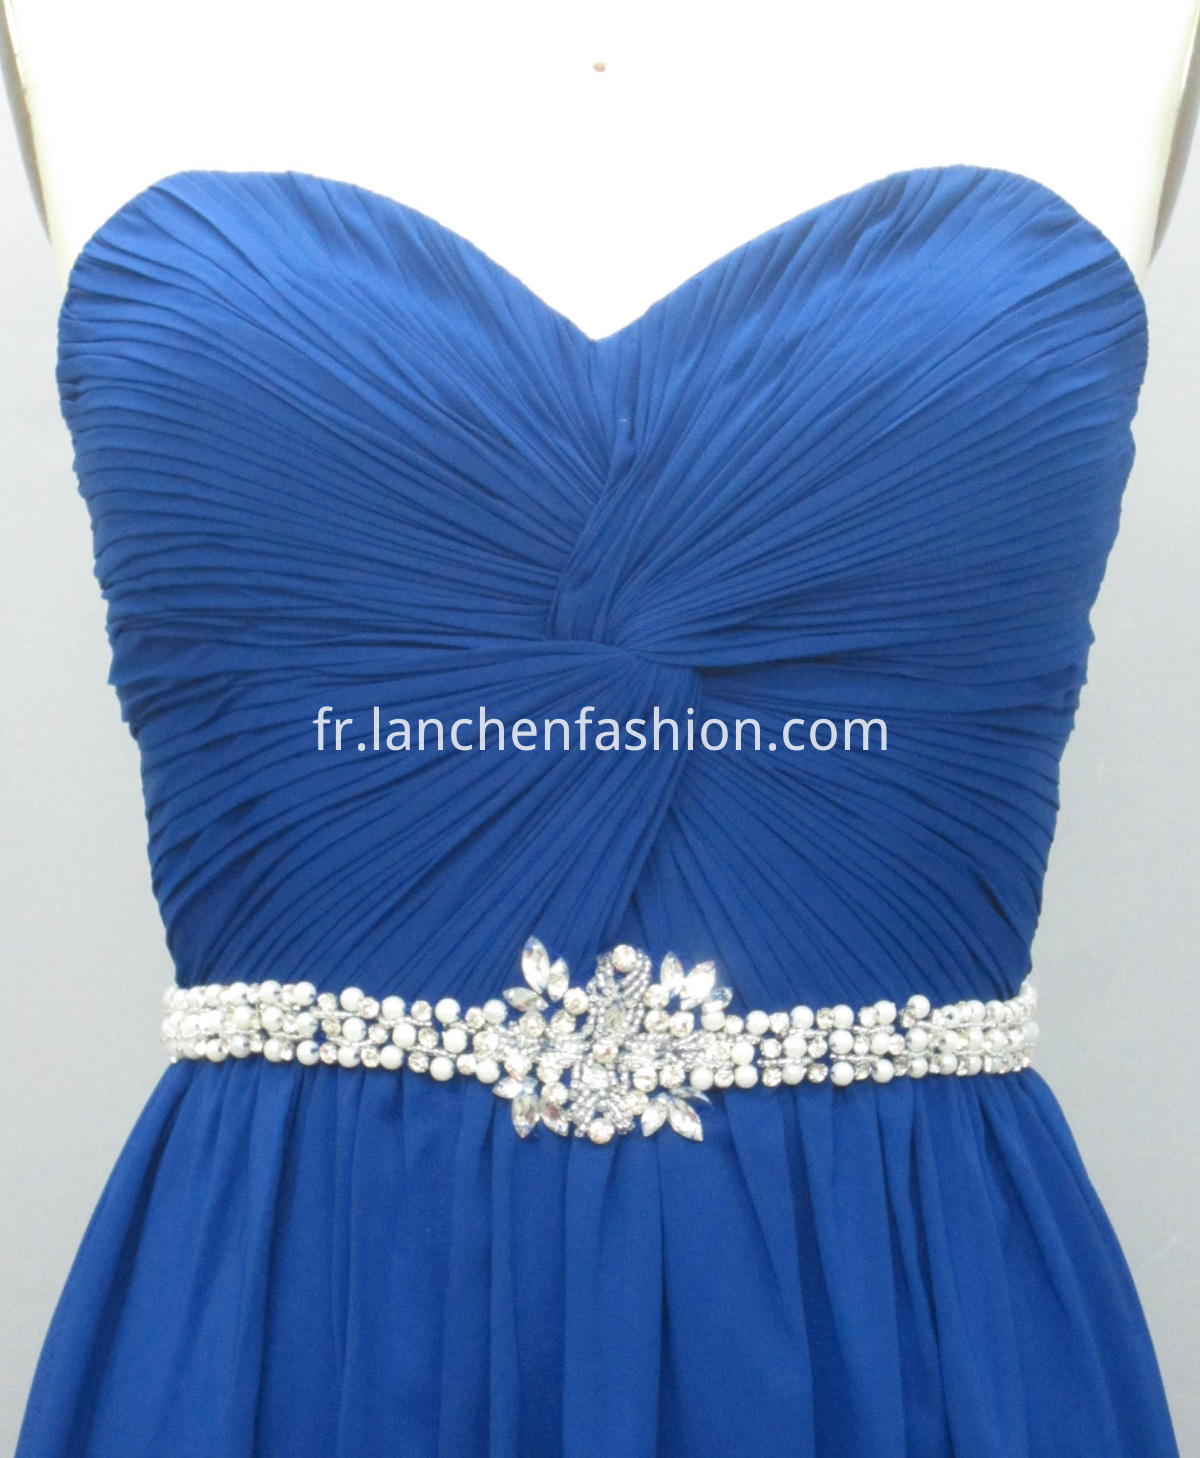 dress ROYAL detail